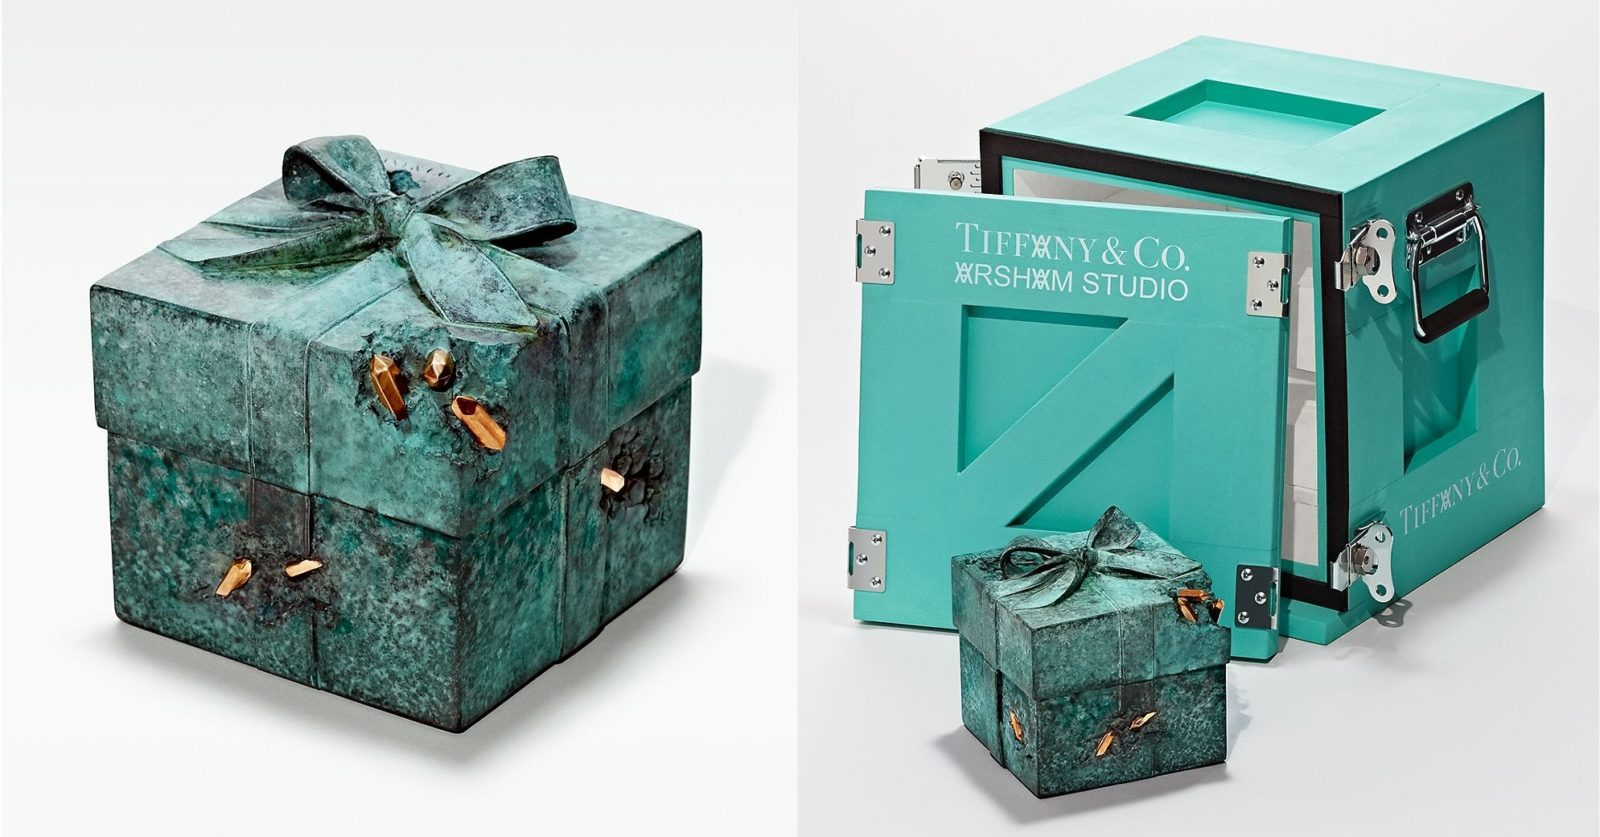 First look: Tiffany & Co taps Daniel Arsham to create limited-edition Blue Box sculptures